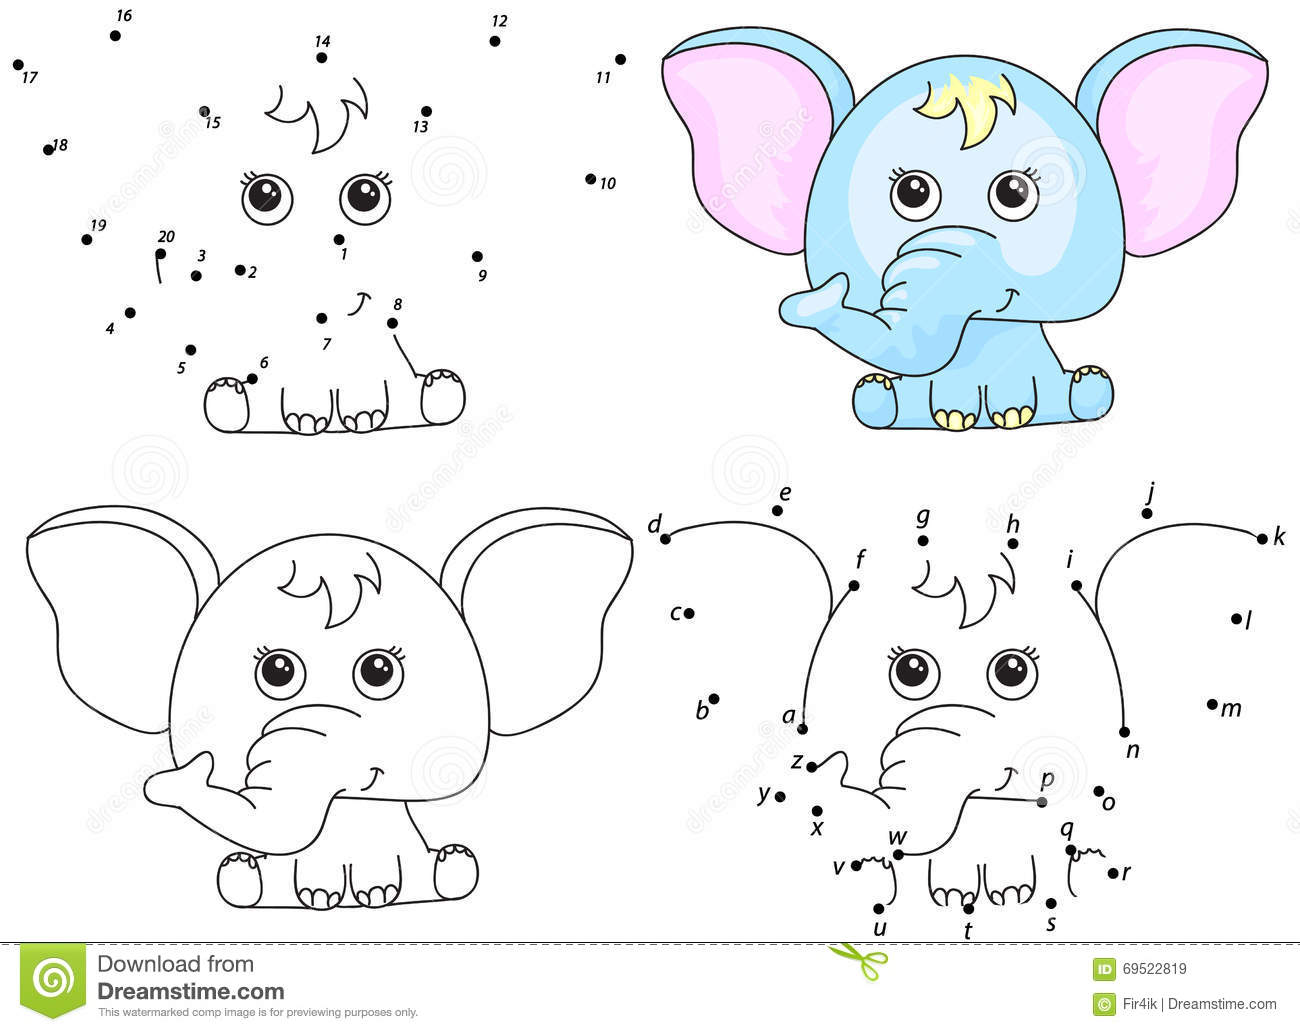 Royalty Free Vector Download Cartoon Elephant Coloring Book